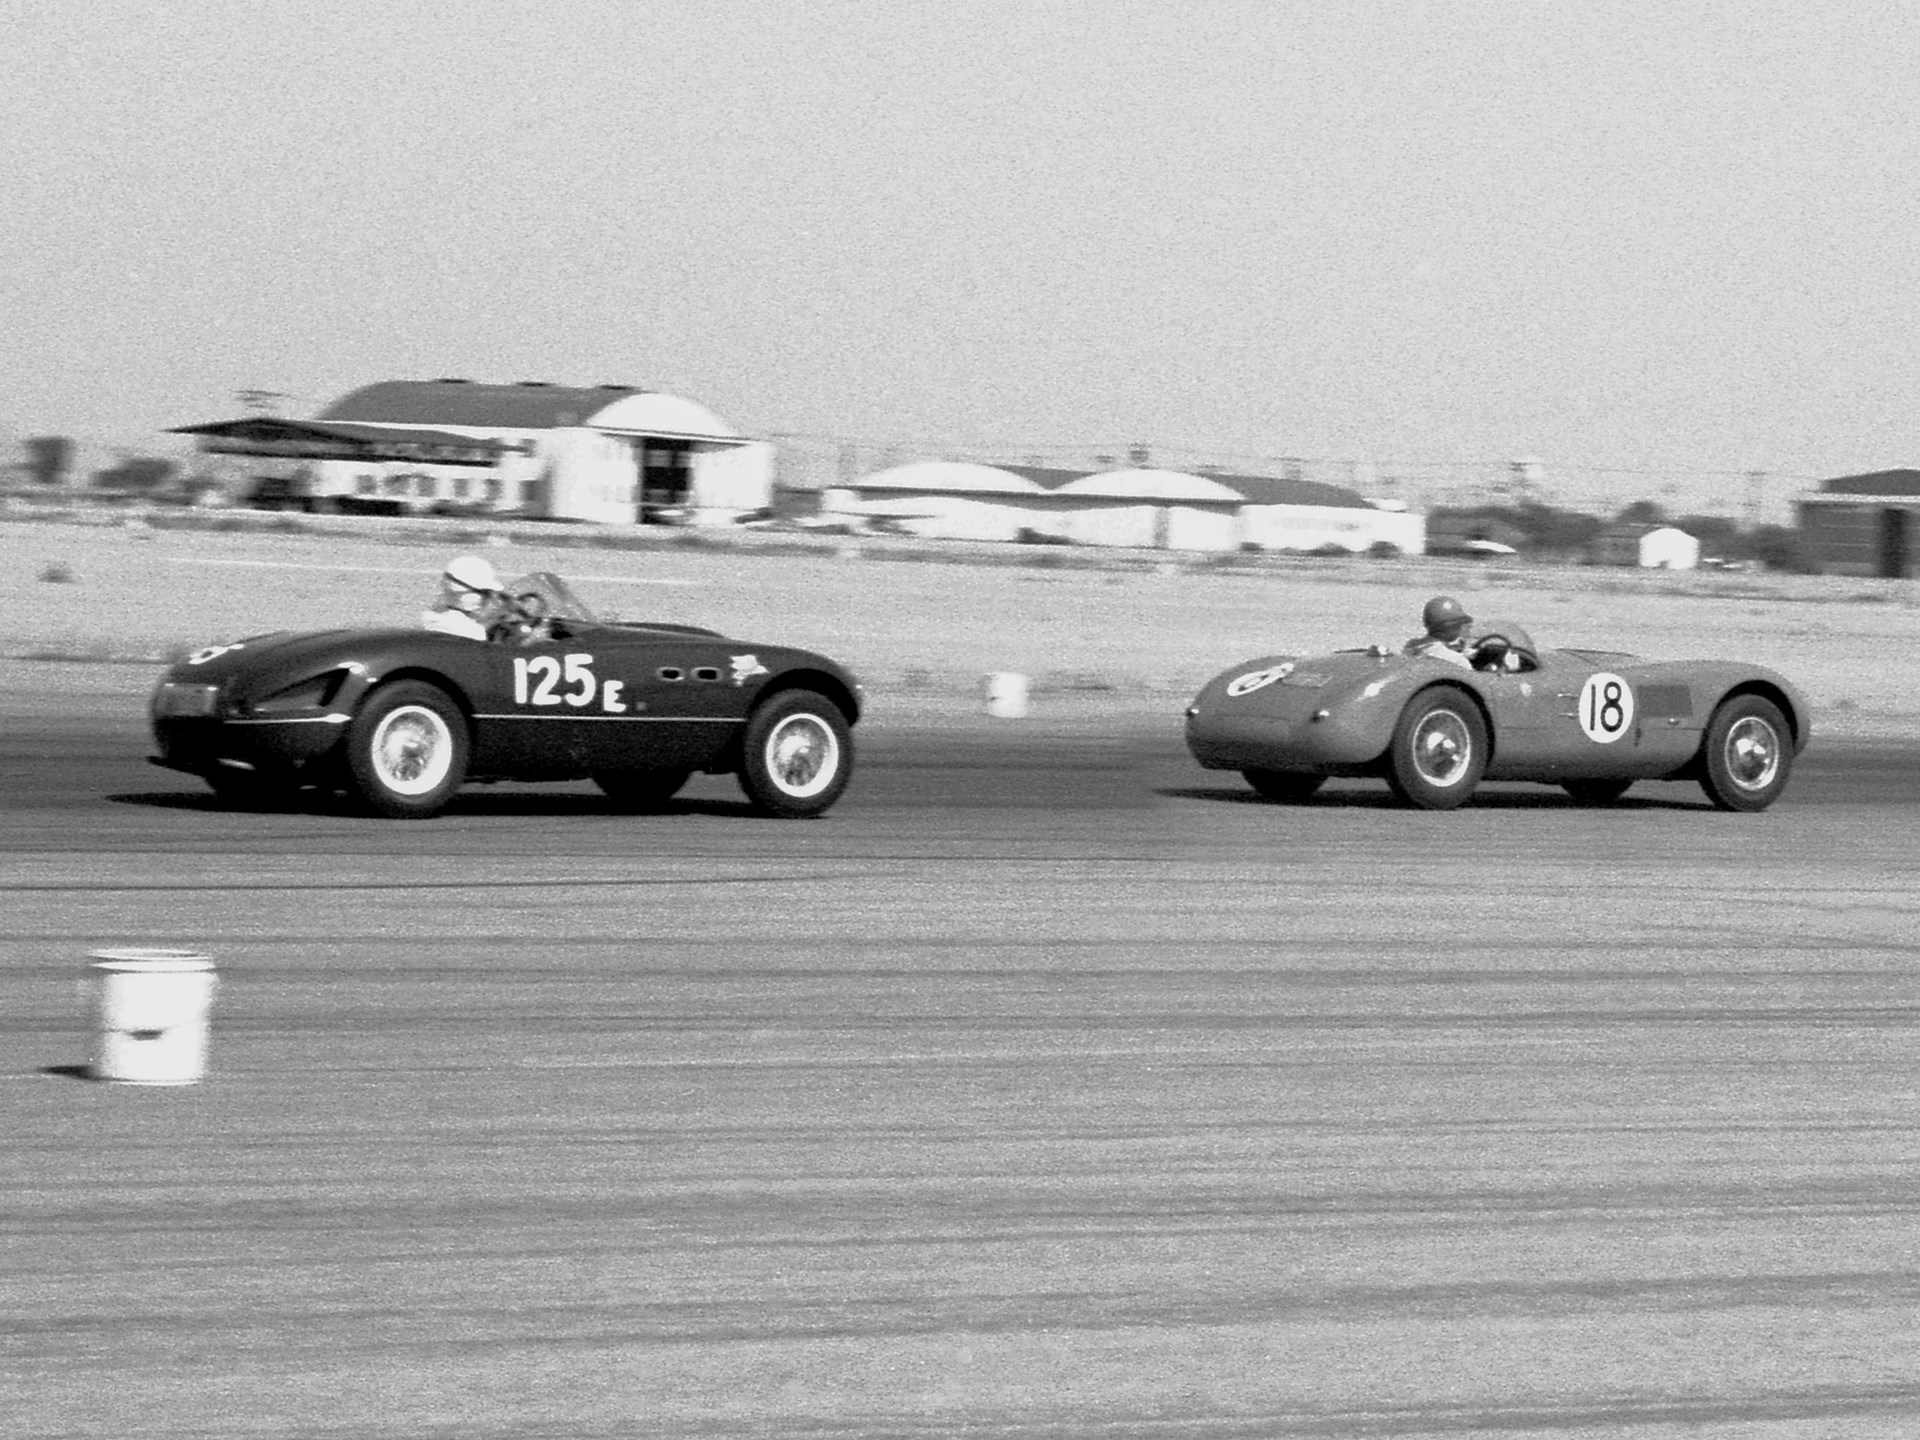 The Vignale-bodied Ferrari 166 (0342 M) piloted by Bill Louden chasing XKC 007 at Bakersfield in May of 1956.